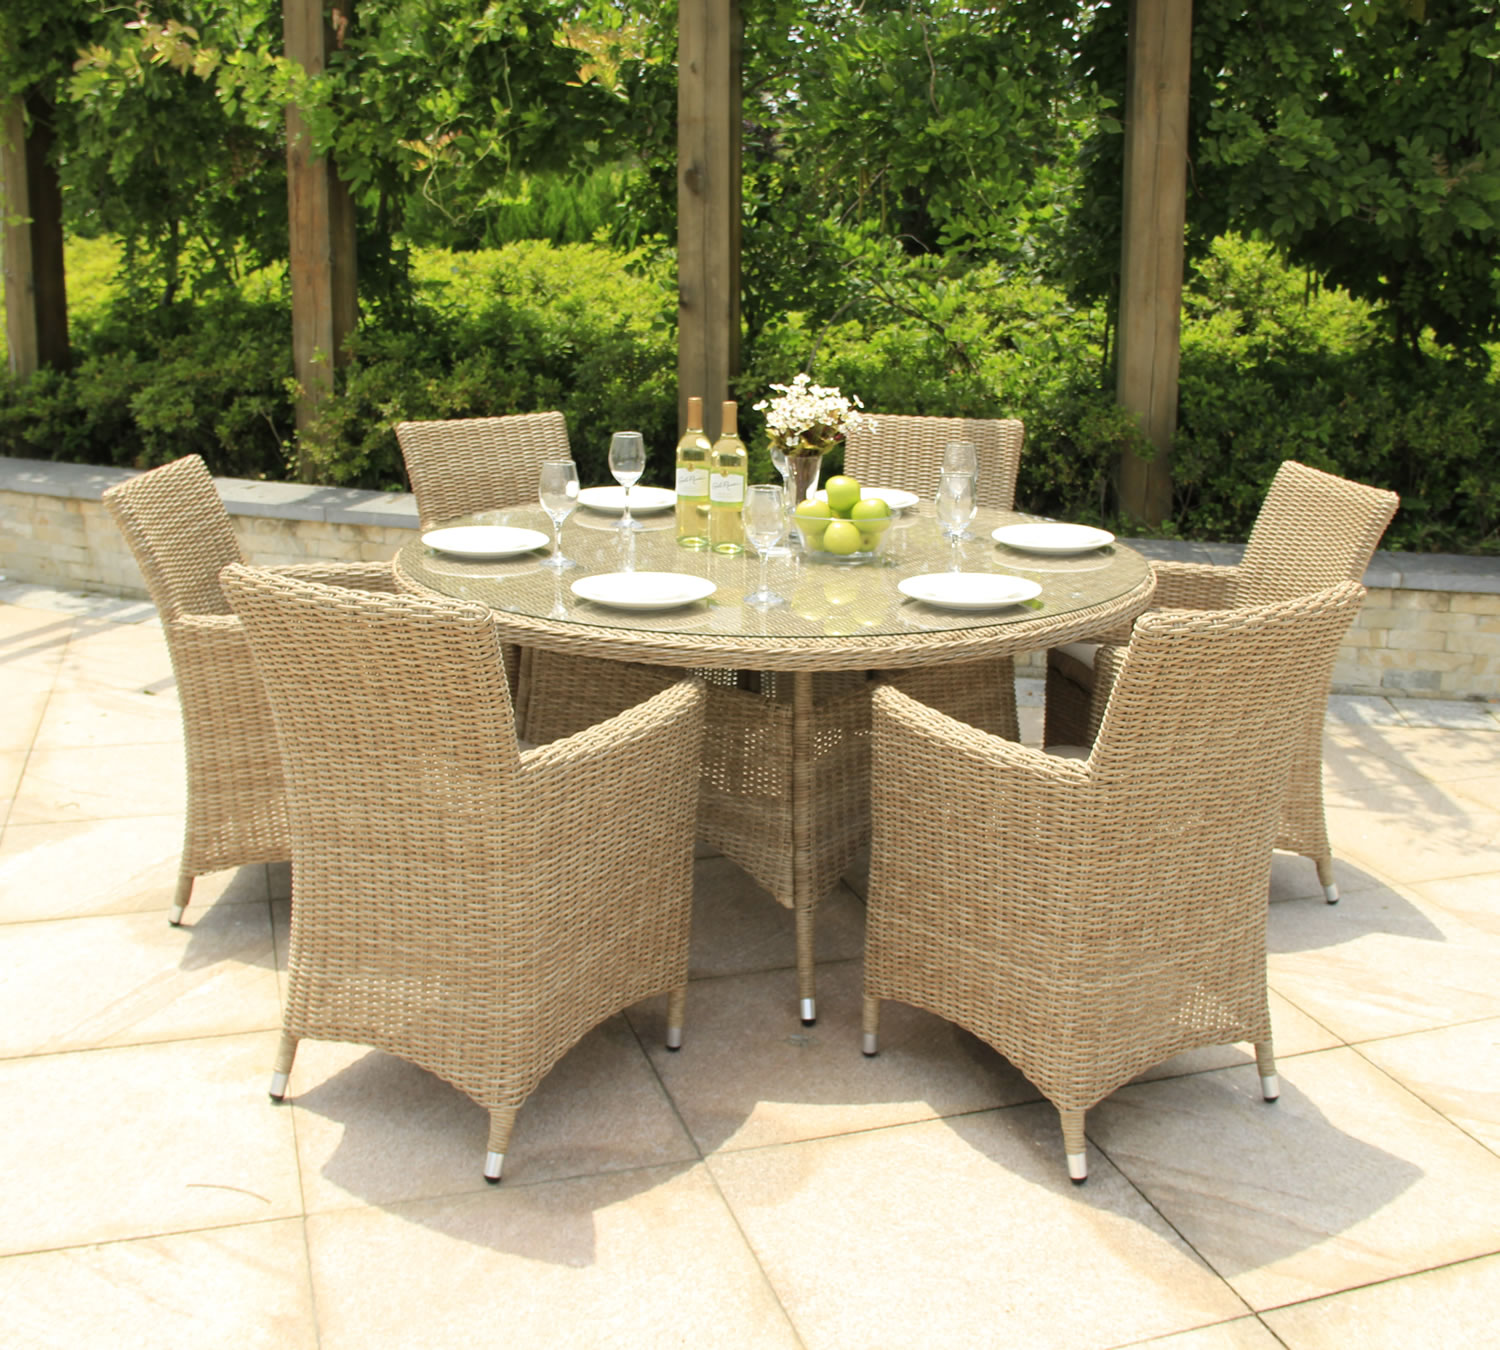 HD wallpapers patio dining sets for less